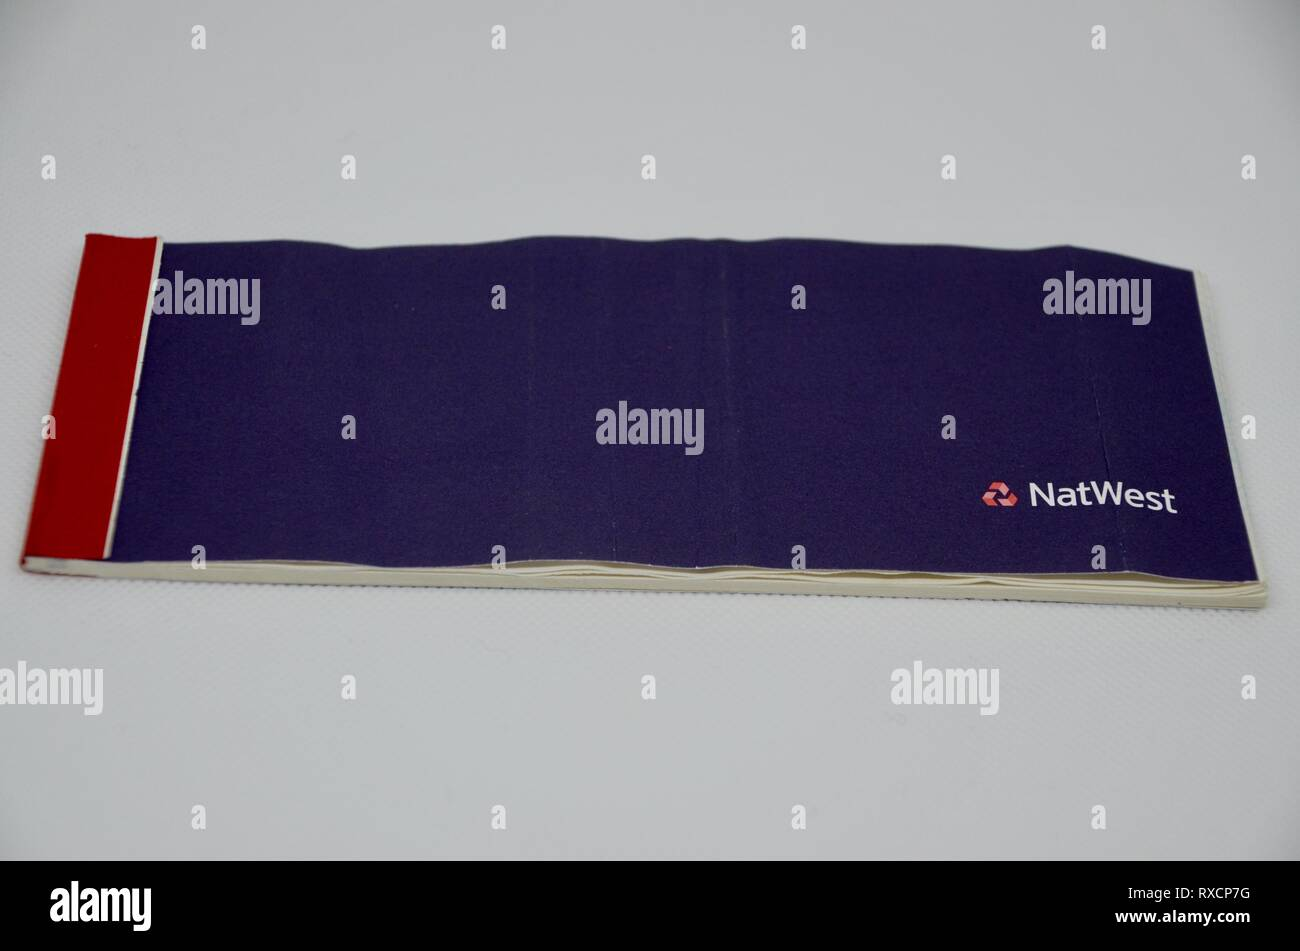 a natwest blue cheque book from the 2000s england UK - Stock Image